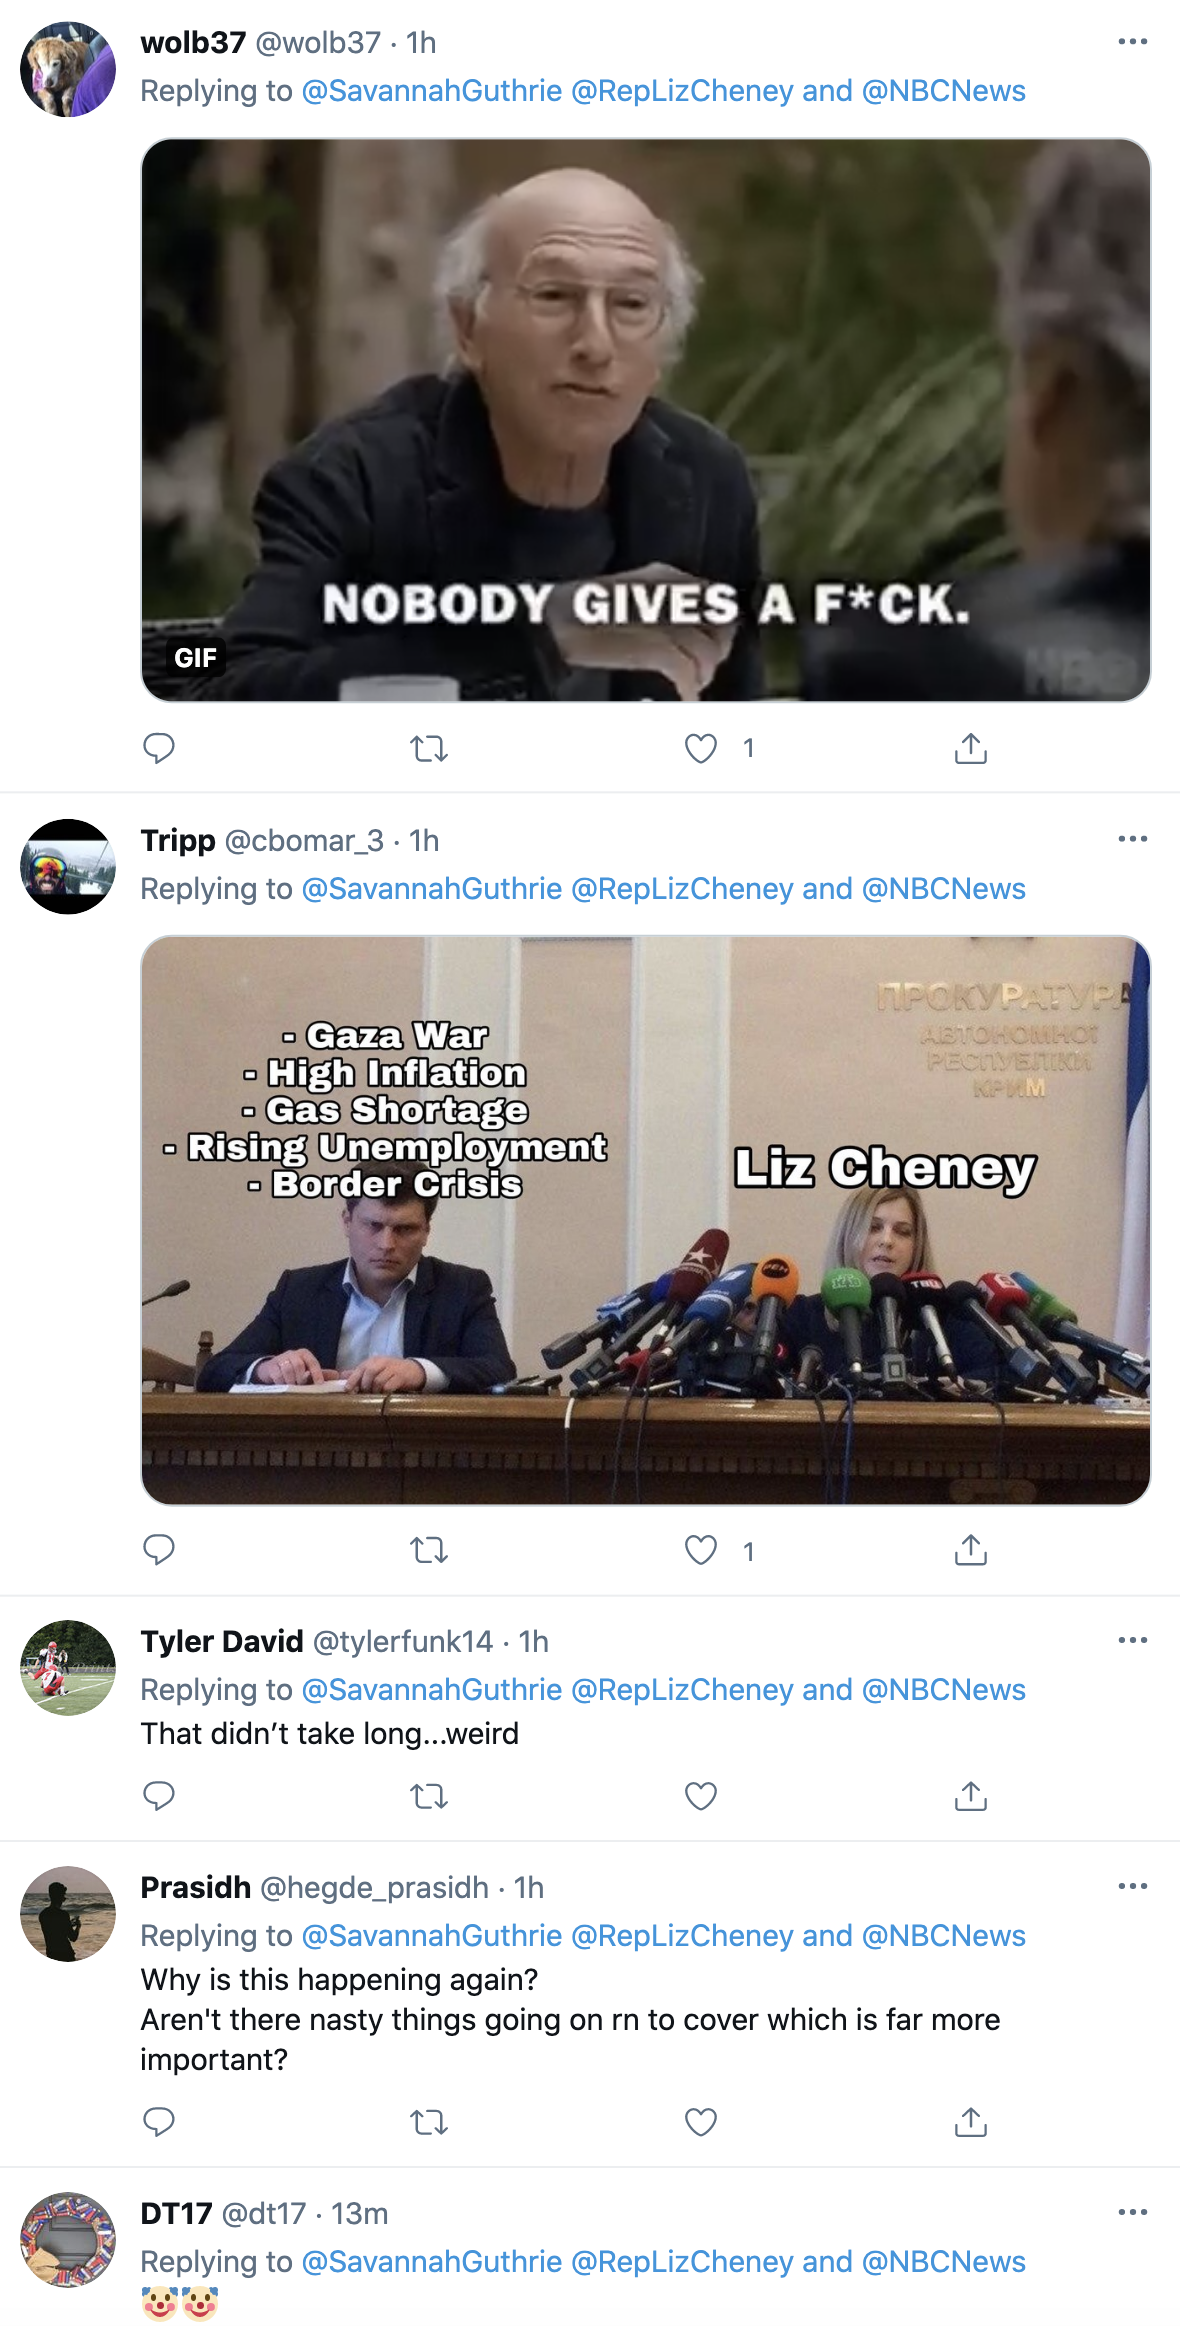 Screen-Shot-2021-05-12-at-11.01.19-AM Liz Cheney Puts GOP On Notice During Prime-Time Interview Corruption Featured National Security Politics Top Stories